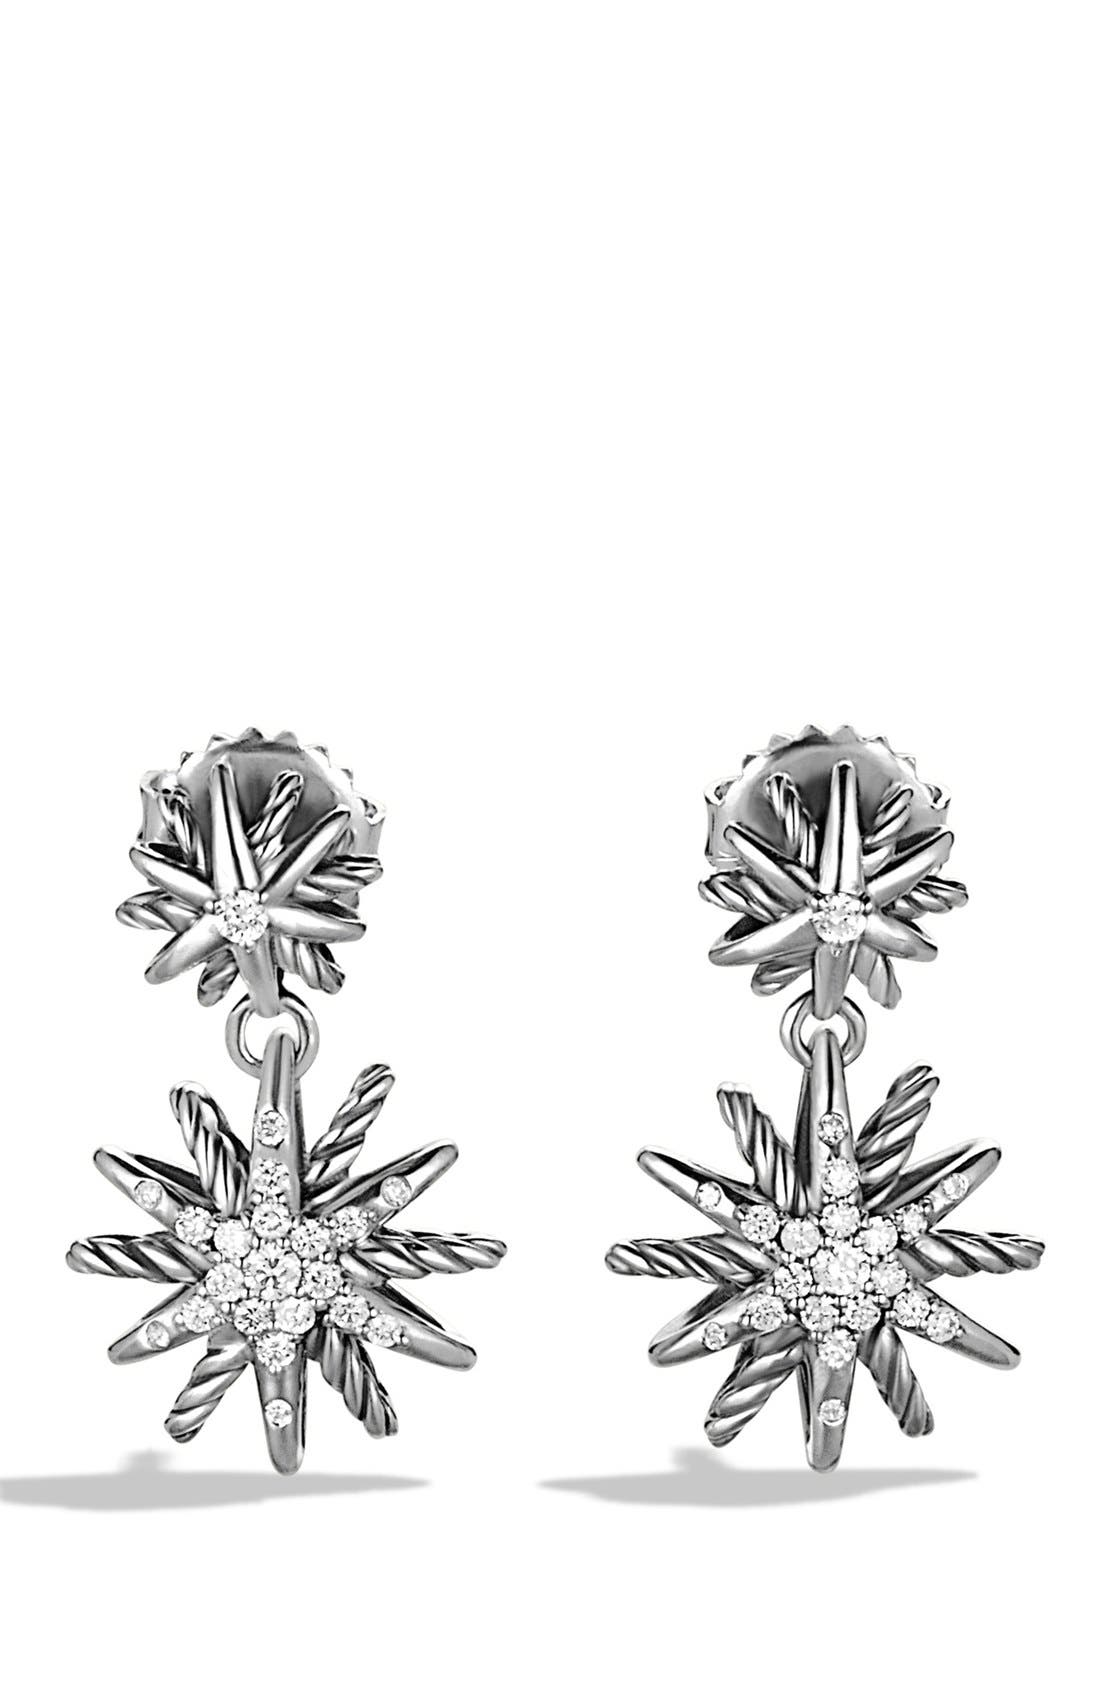 Alternate Image 1 Selected - David Yurman 'Starburst' Double-Drop Earrings with Diamonds